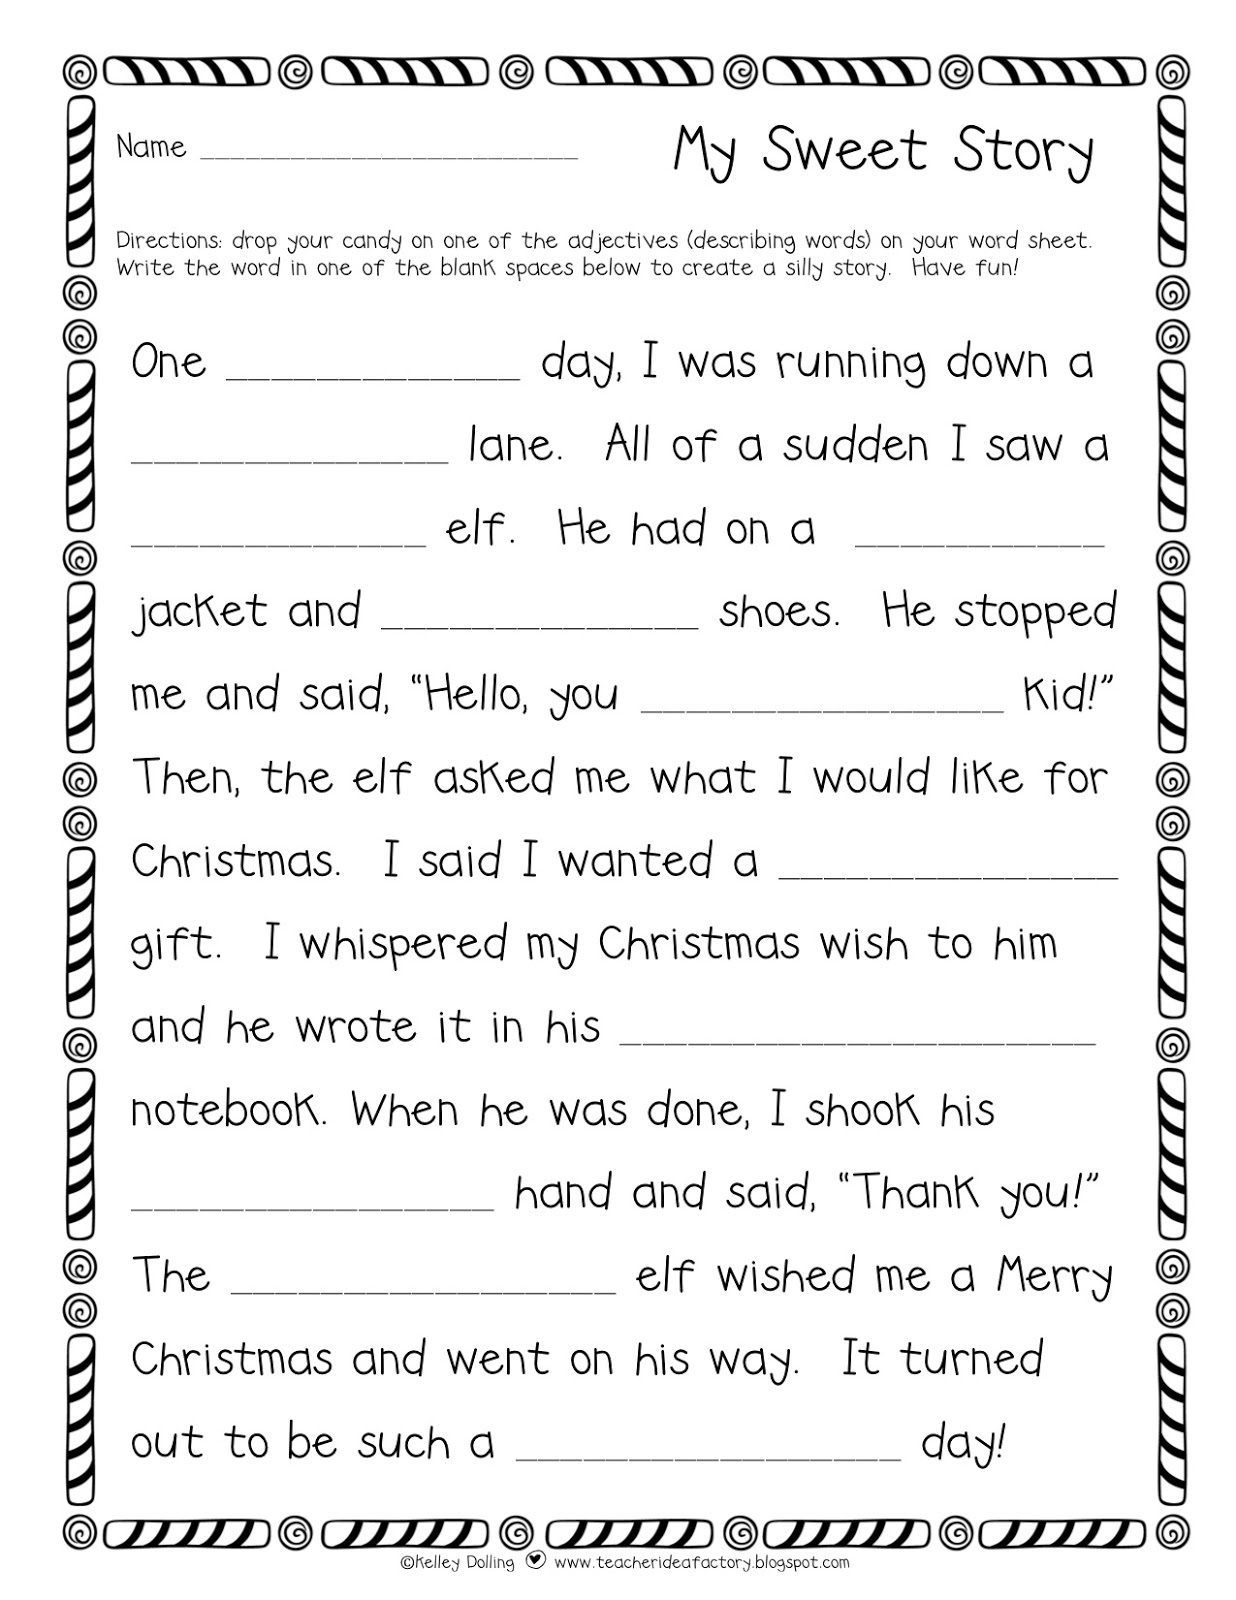 My Sweet Story A Holiday Flavored Freebie